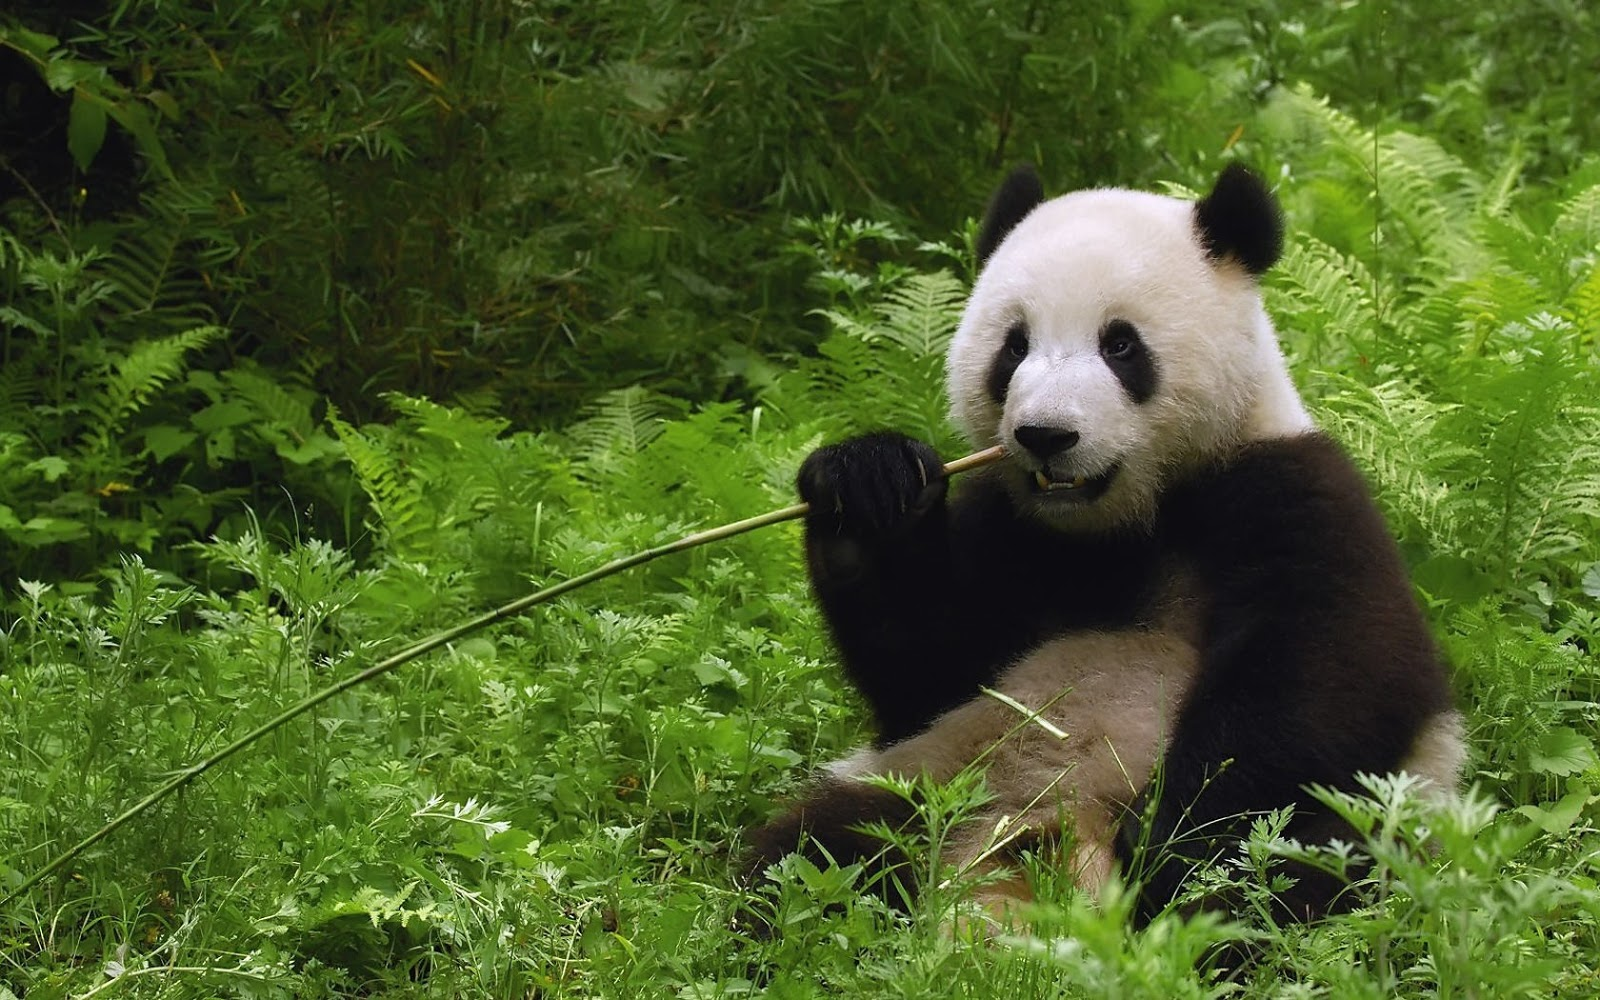 Cute Panda Bears HD Wallpapers | Desktop Wallpapers - photo#45